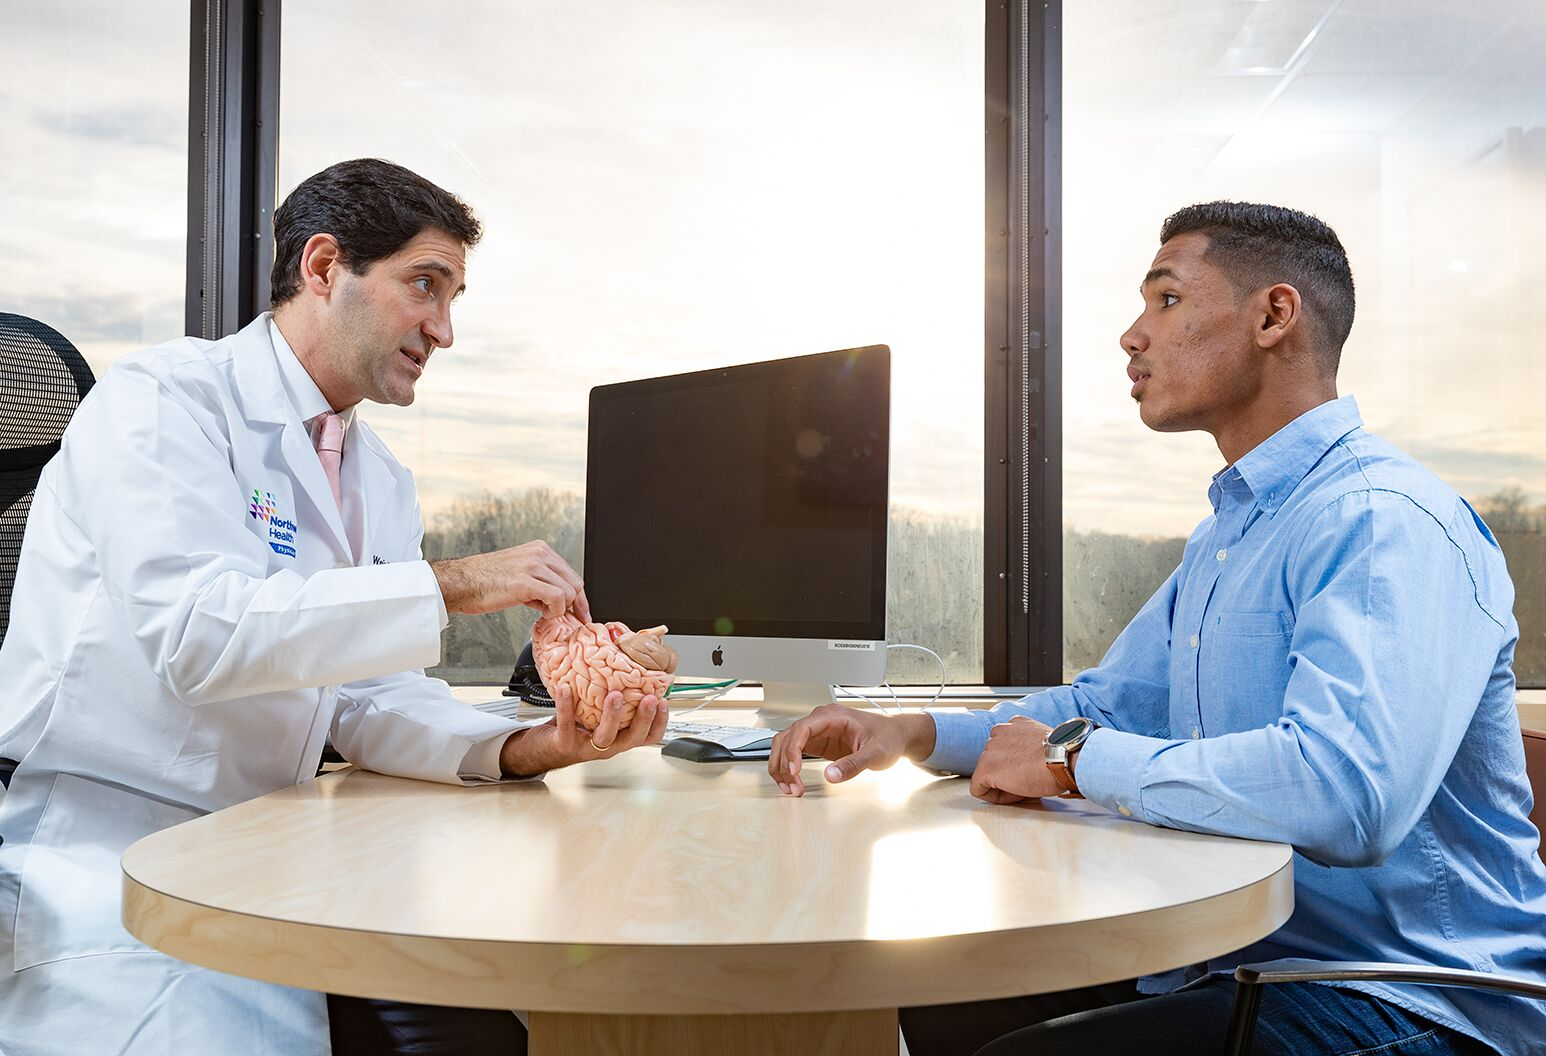 A male doctor holding a brain model sits a desk with a young male wearing a blue shirt.